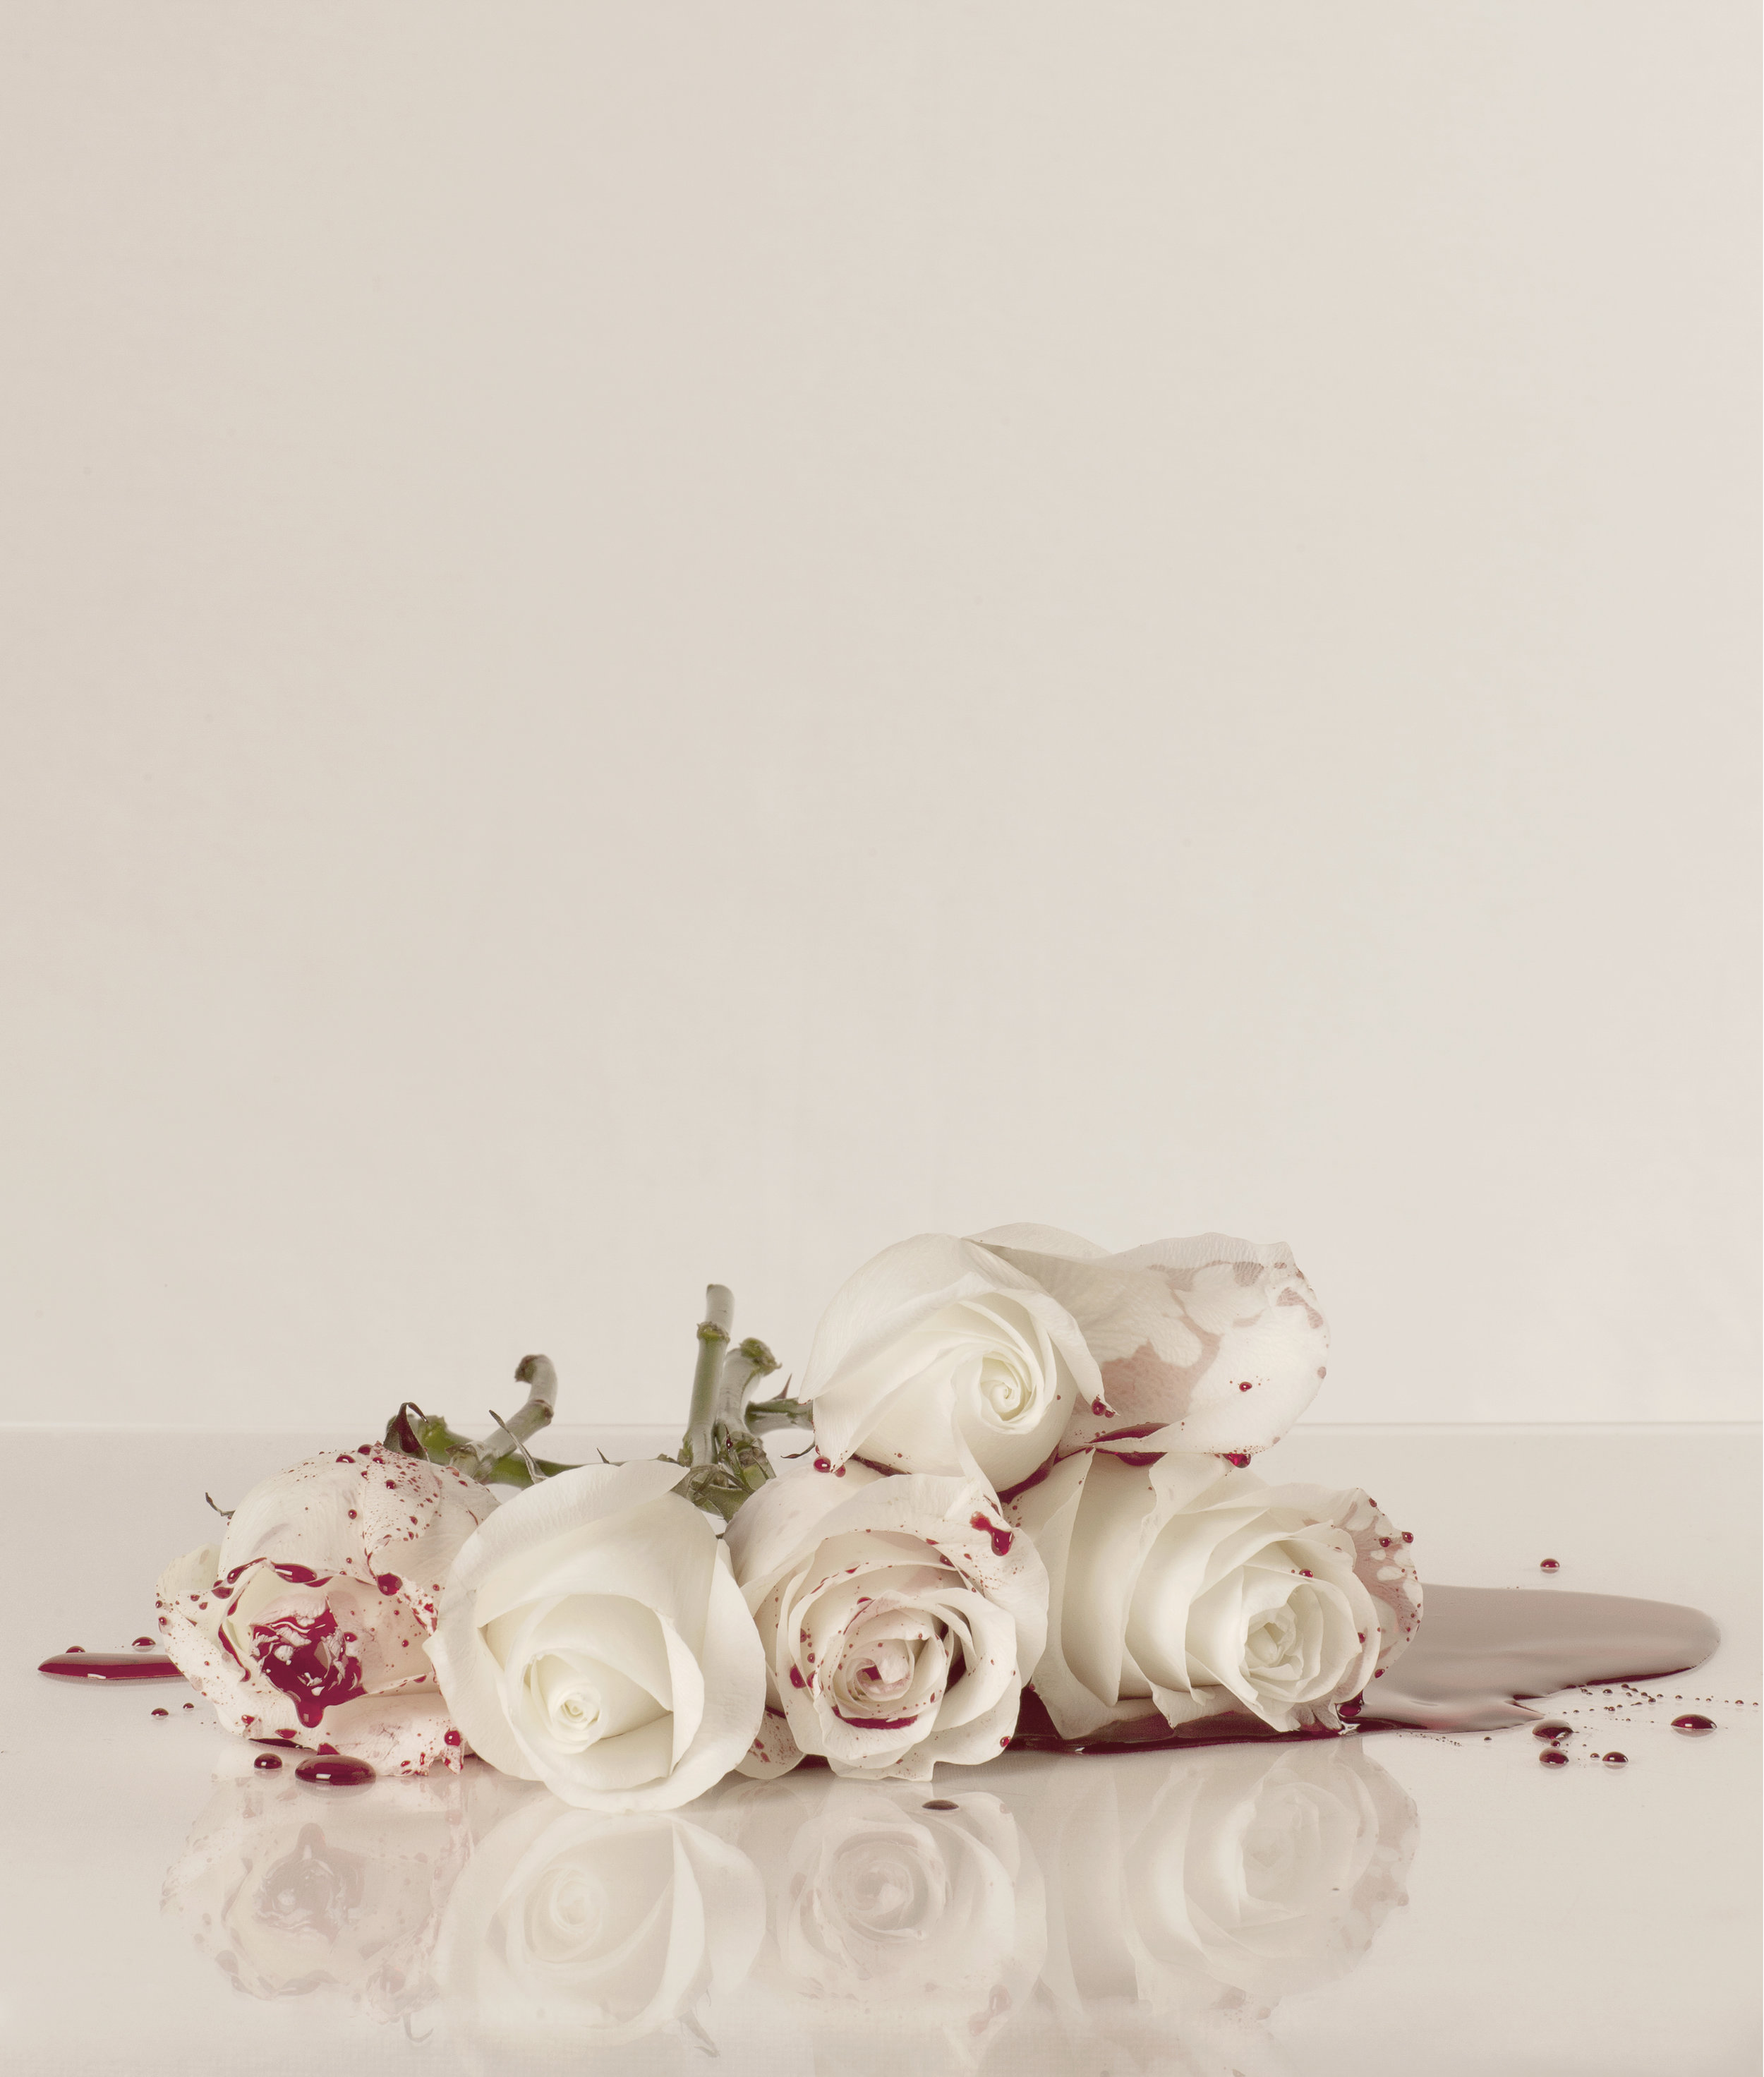 Blood & Roses (17) - colour photograph, edition of 5 + AP